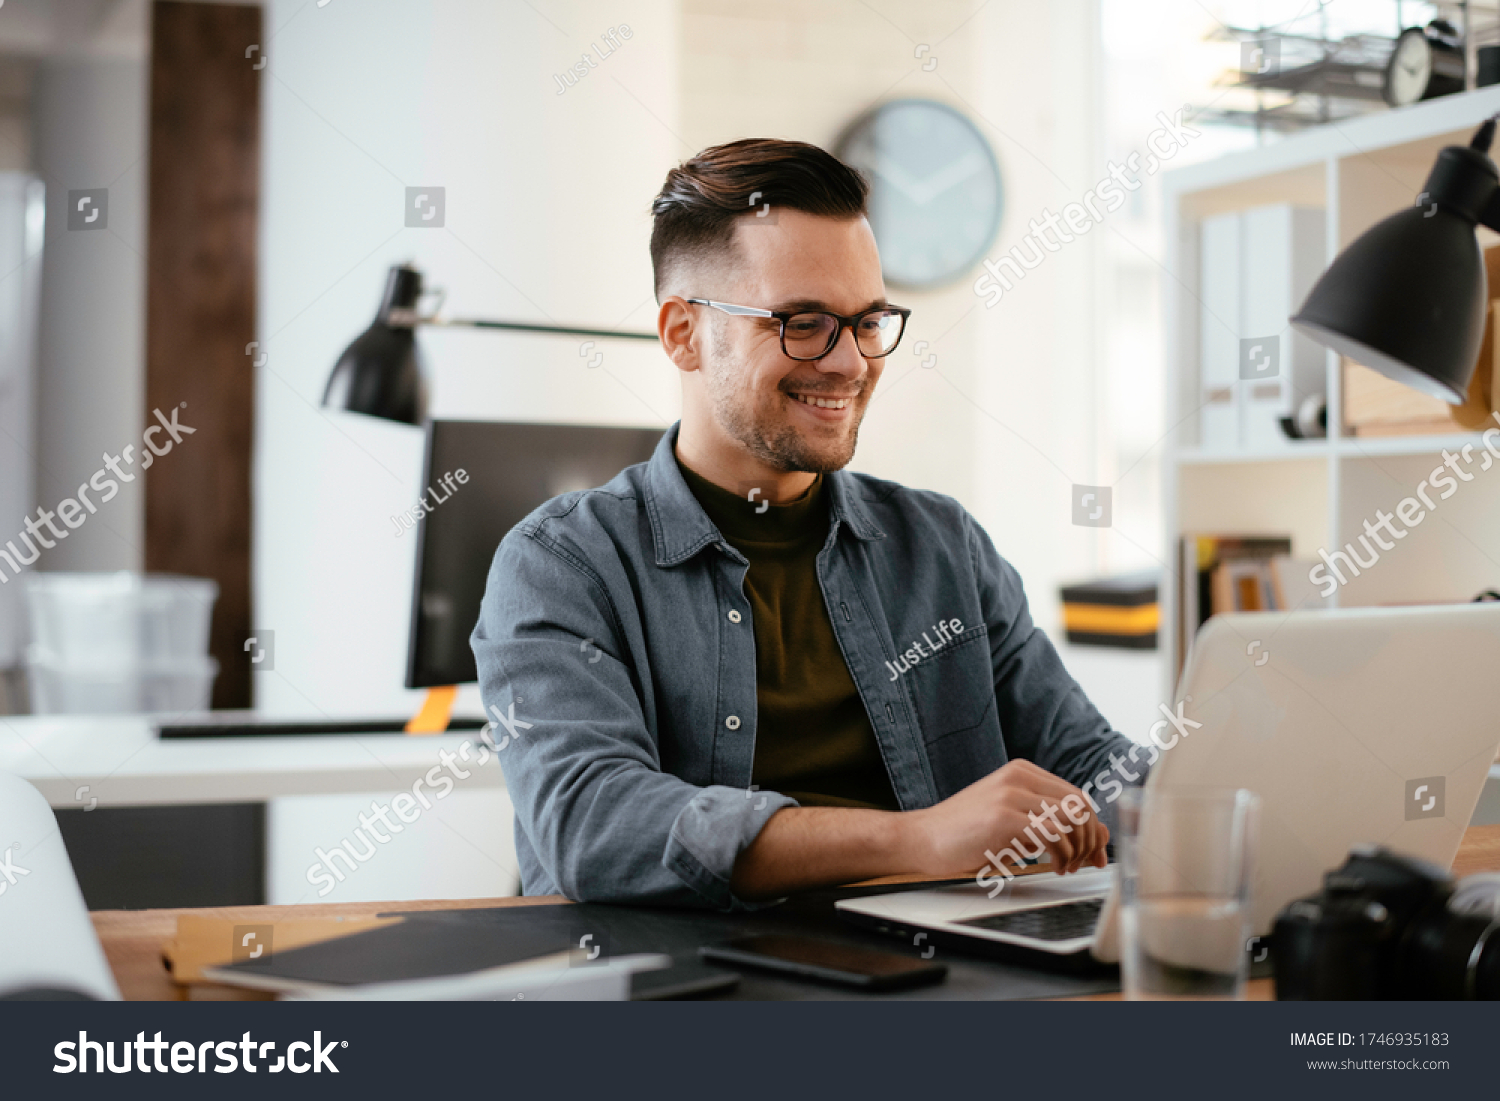 stock-photo-businessman-working-in-office-young-handsome-man-working-on-lap-top-1746935183